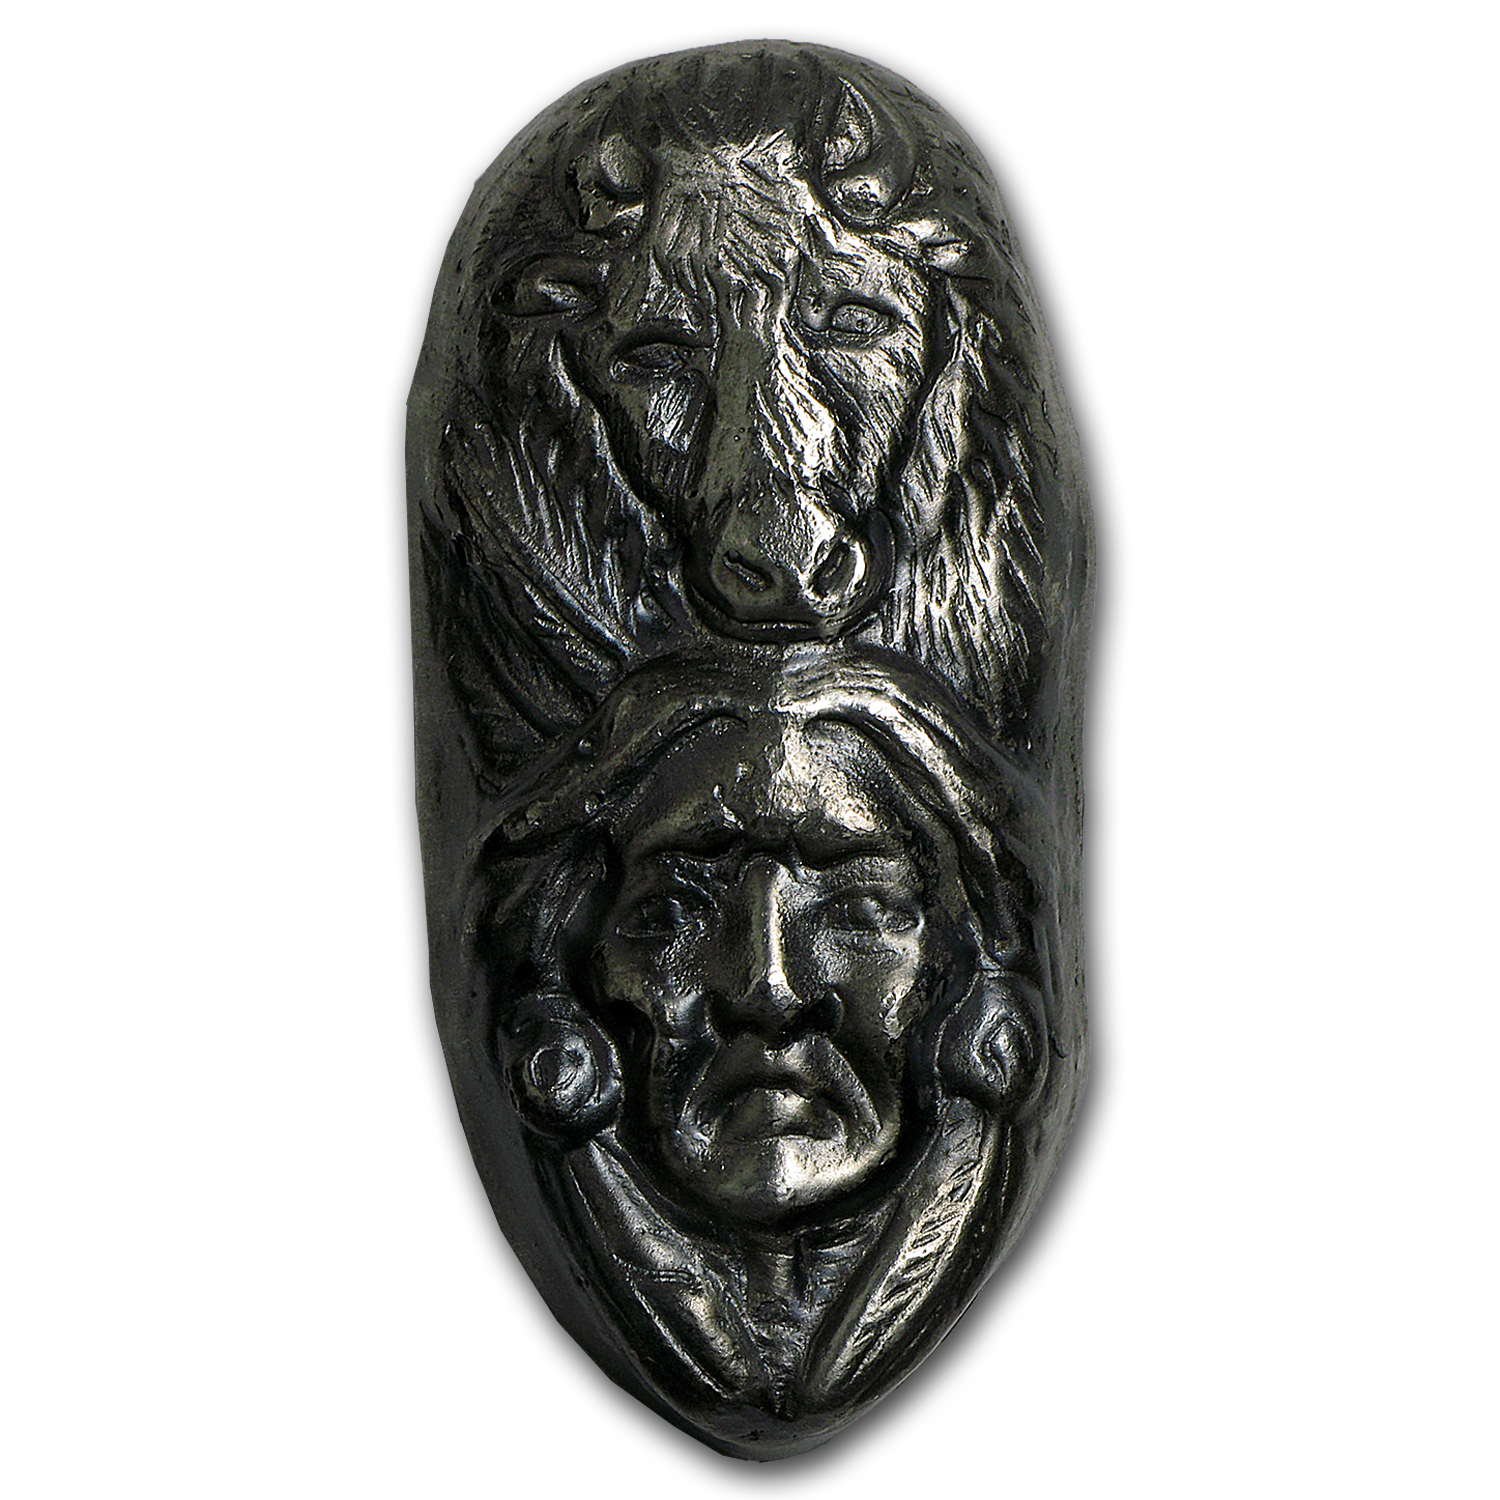 5 oz Silver Bar - Bison Bullion (Bison & The Warrior)